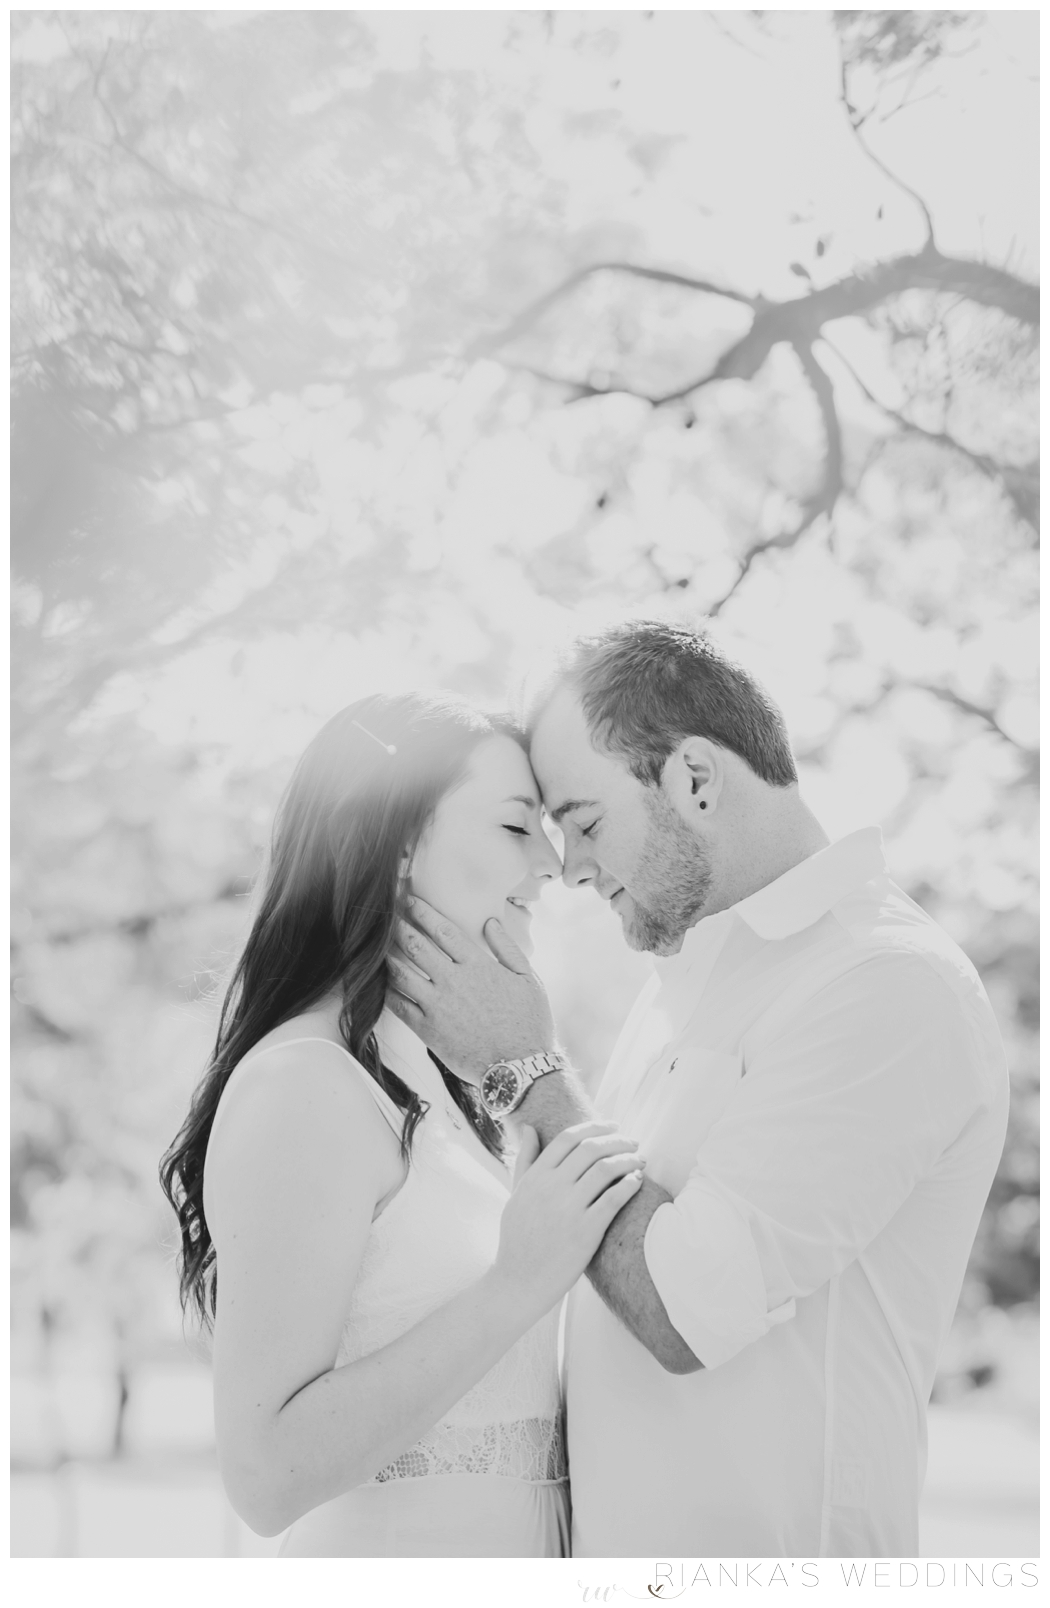 riankas-wedding-photography-pretoria-engagement-shoot-00002